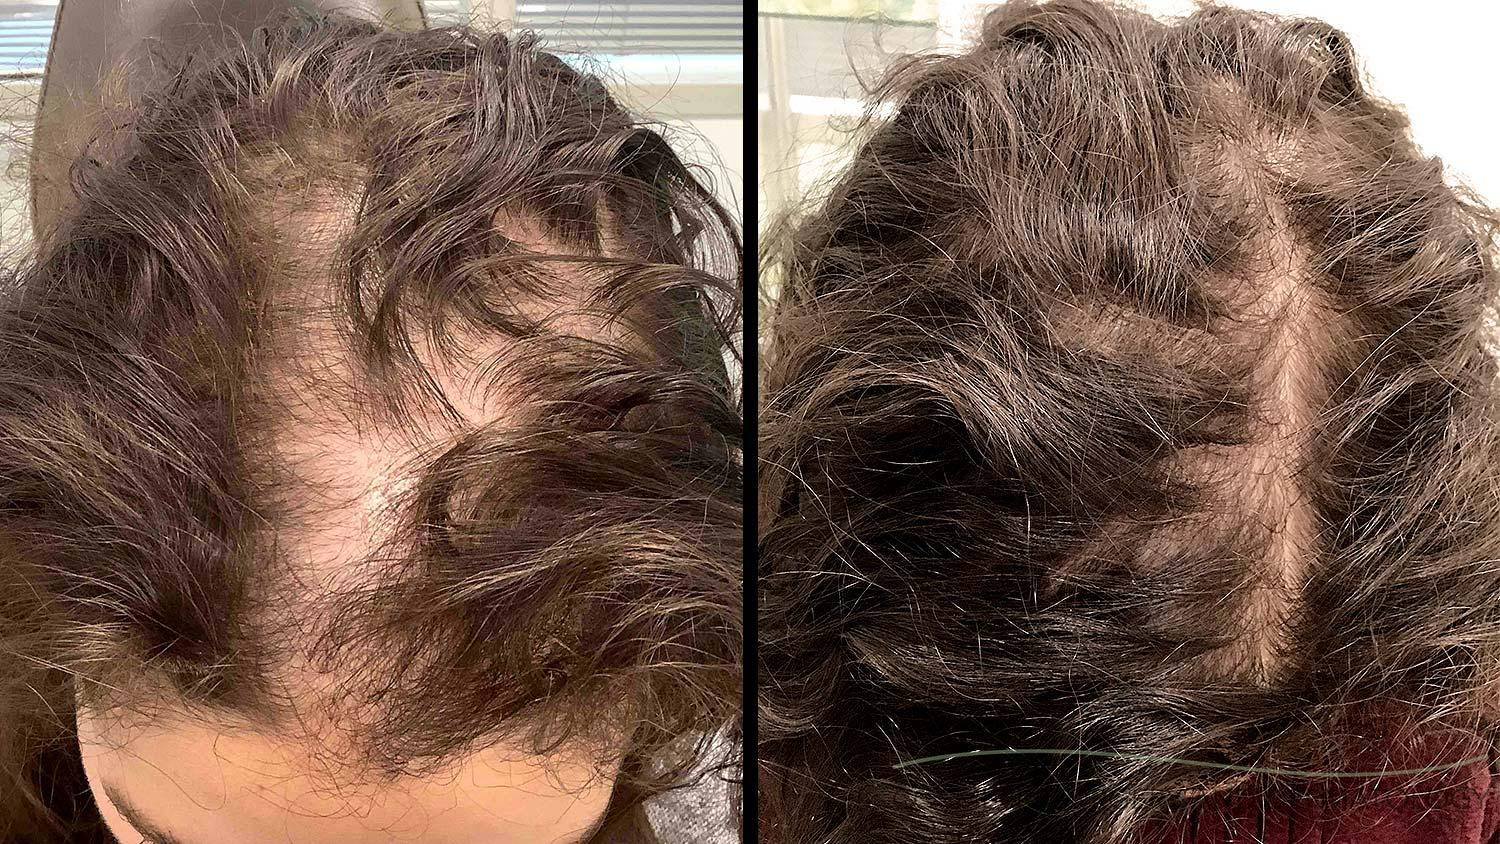 Alopecia hair loss before and after